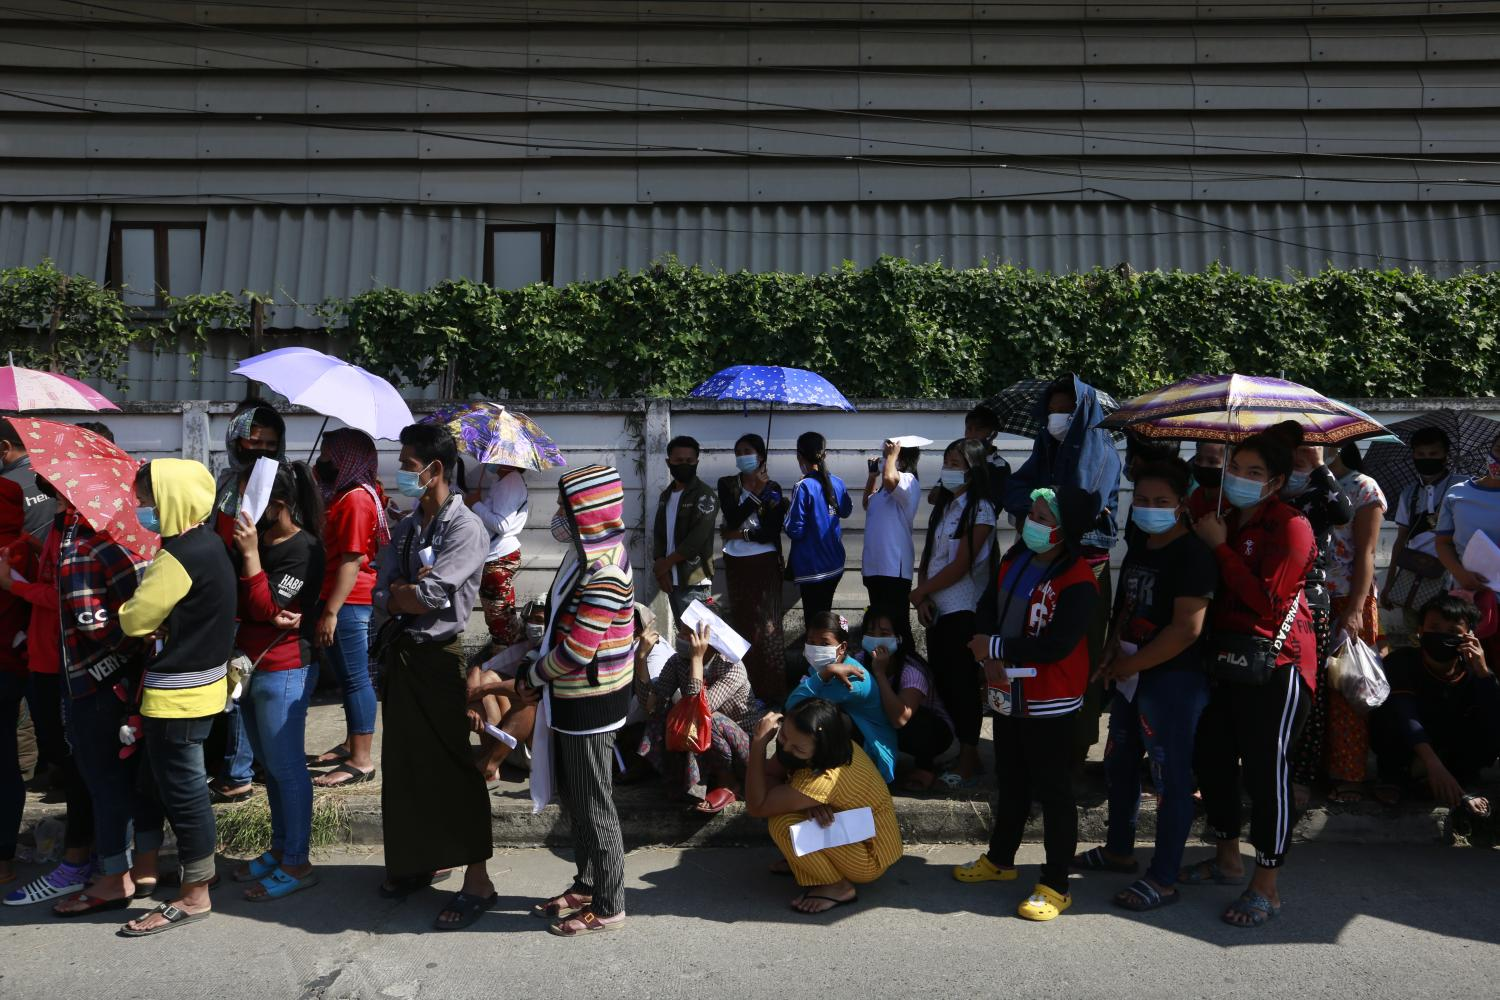 People wait patiently in a queue to receive assistance at a Covid-19 testing centre in Baan Eua Arthorn Tha Chin in Samut Sakhon on Tuesday. (Photo by Arnun Chonmahatrakool)